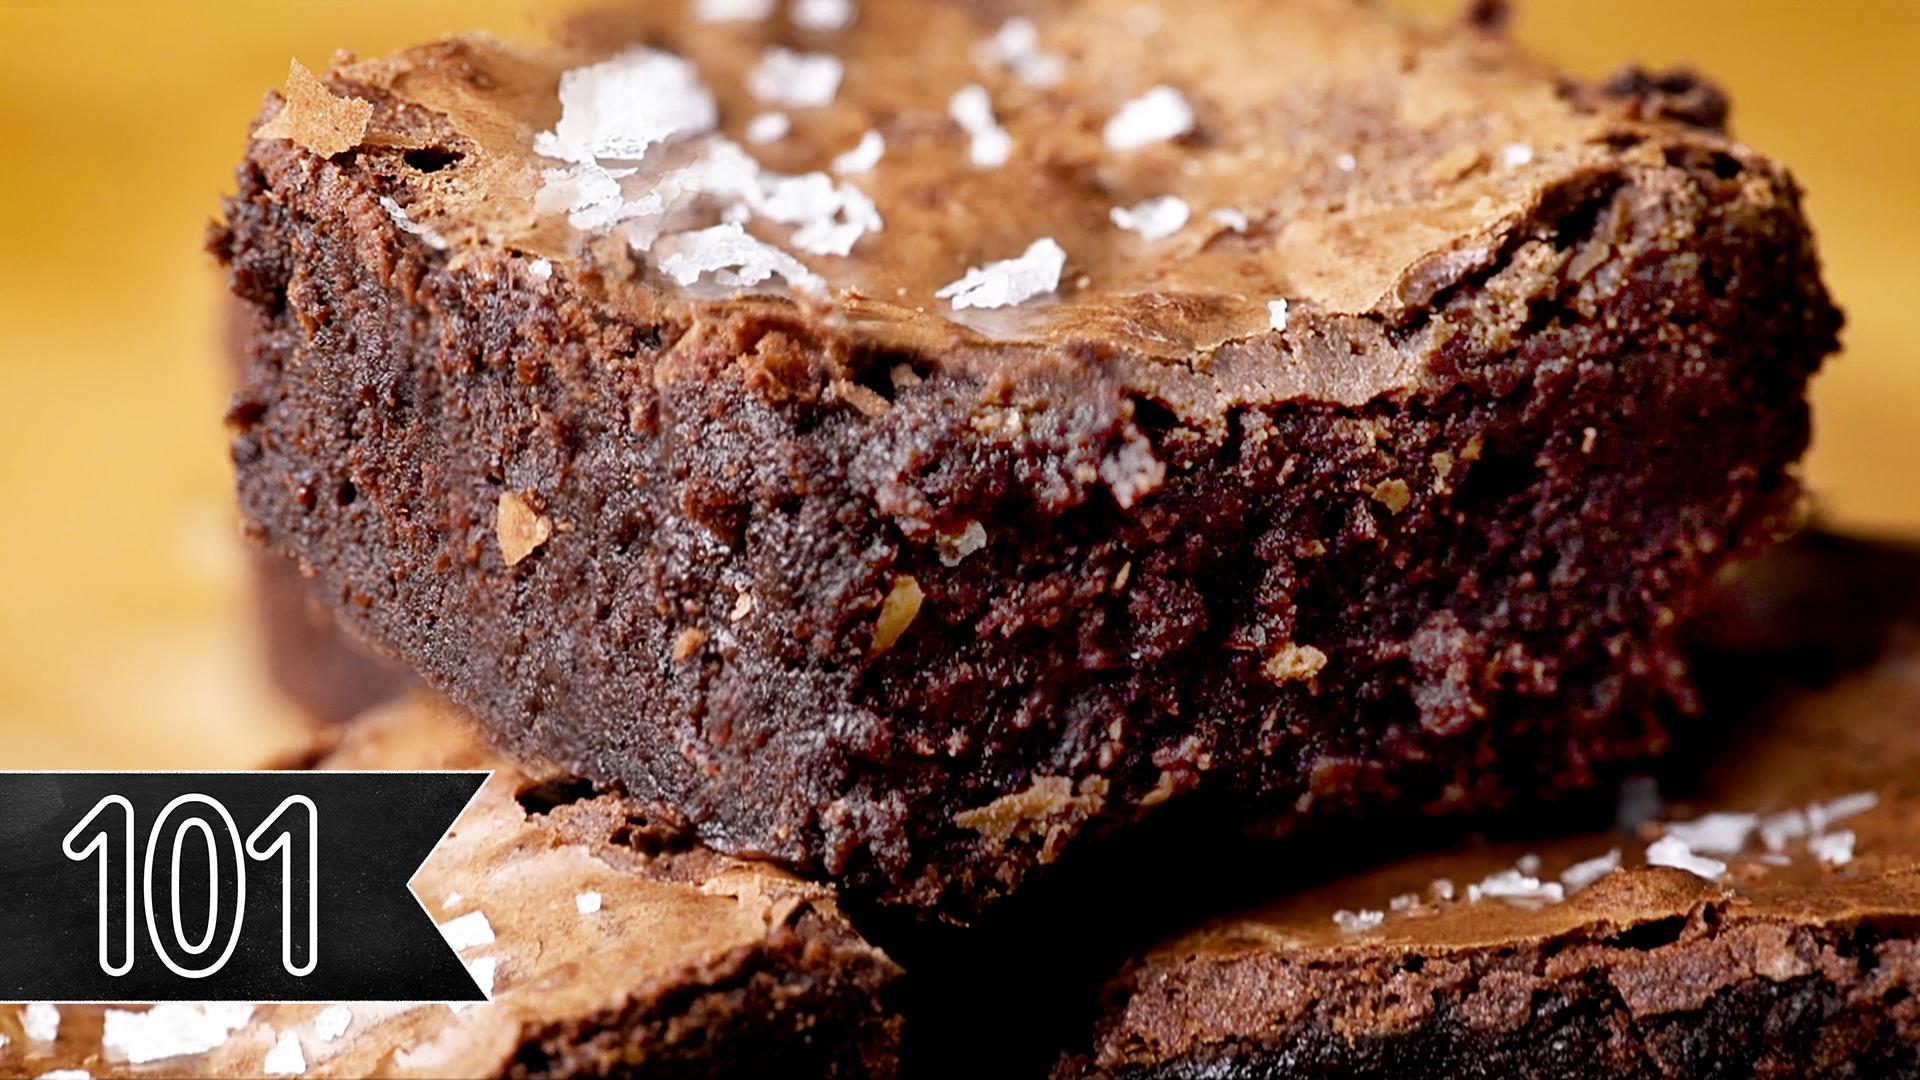 How To Make The Best Brownies Recipe by Tasty image